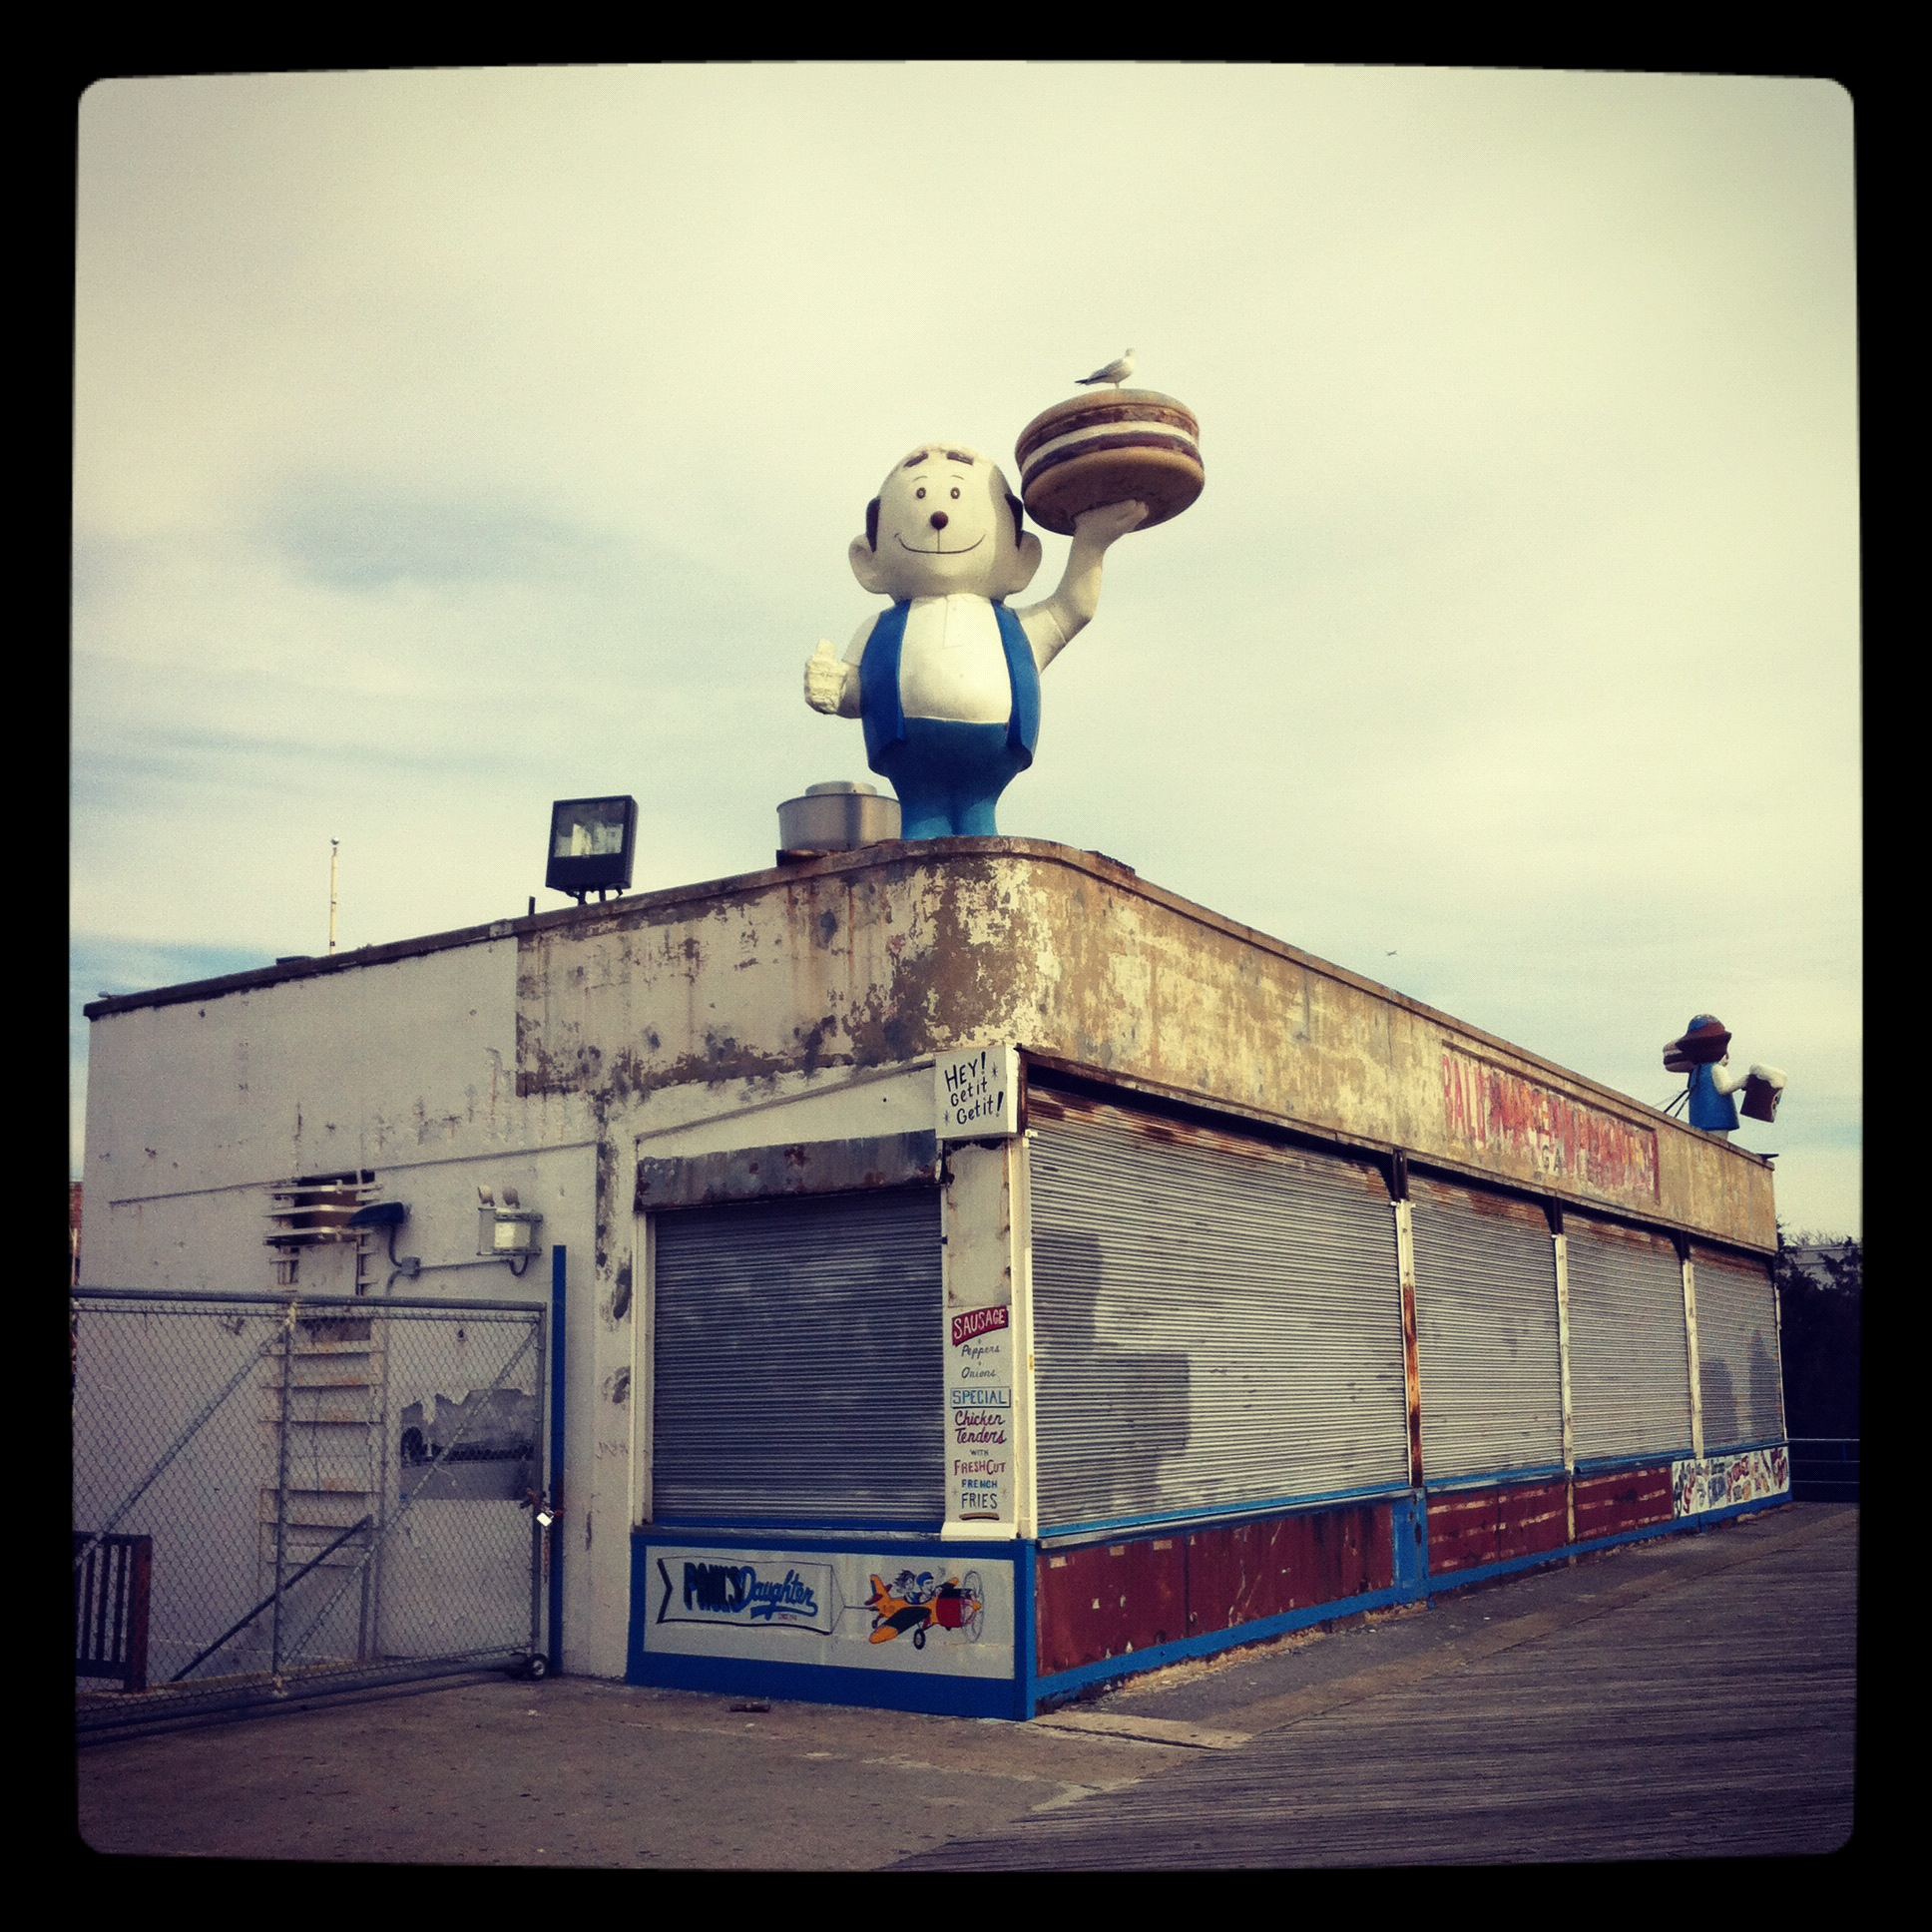 That bird up there must be psyched. Cony Island 2012